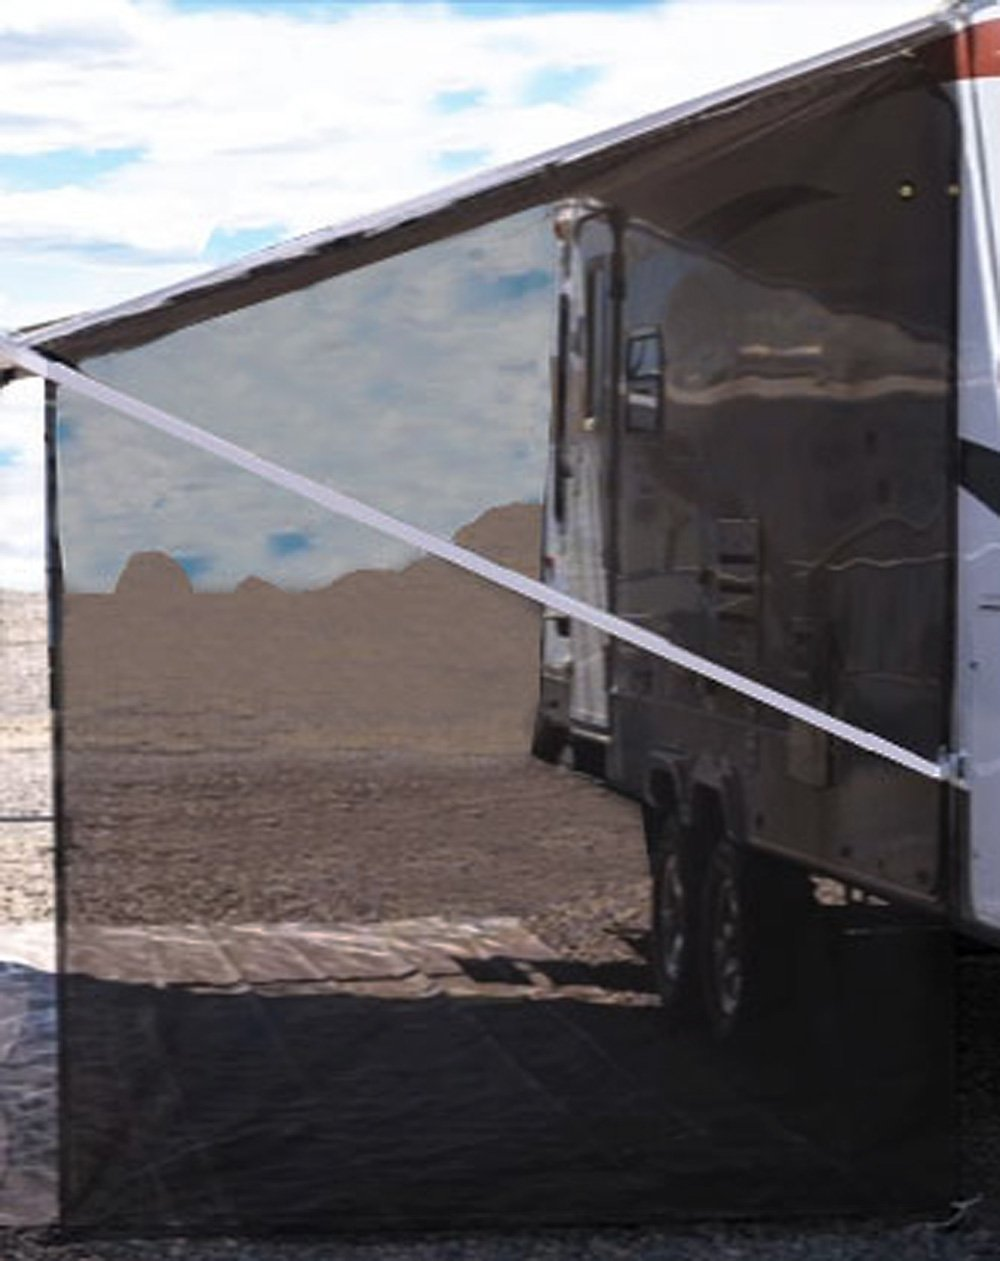 awning shade alloworigin rv awnings disposition accesskeyid screen